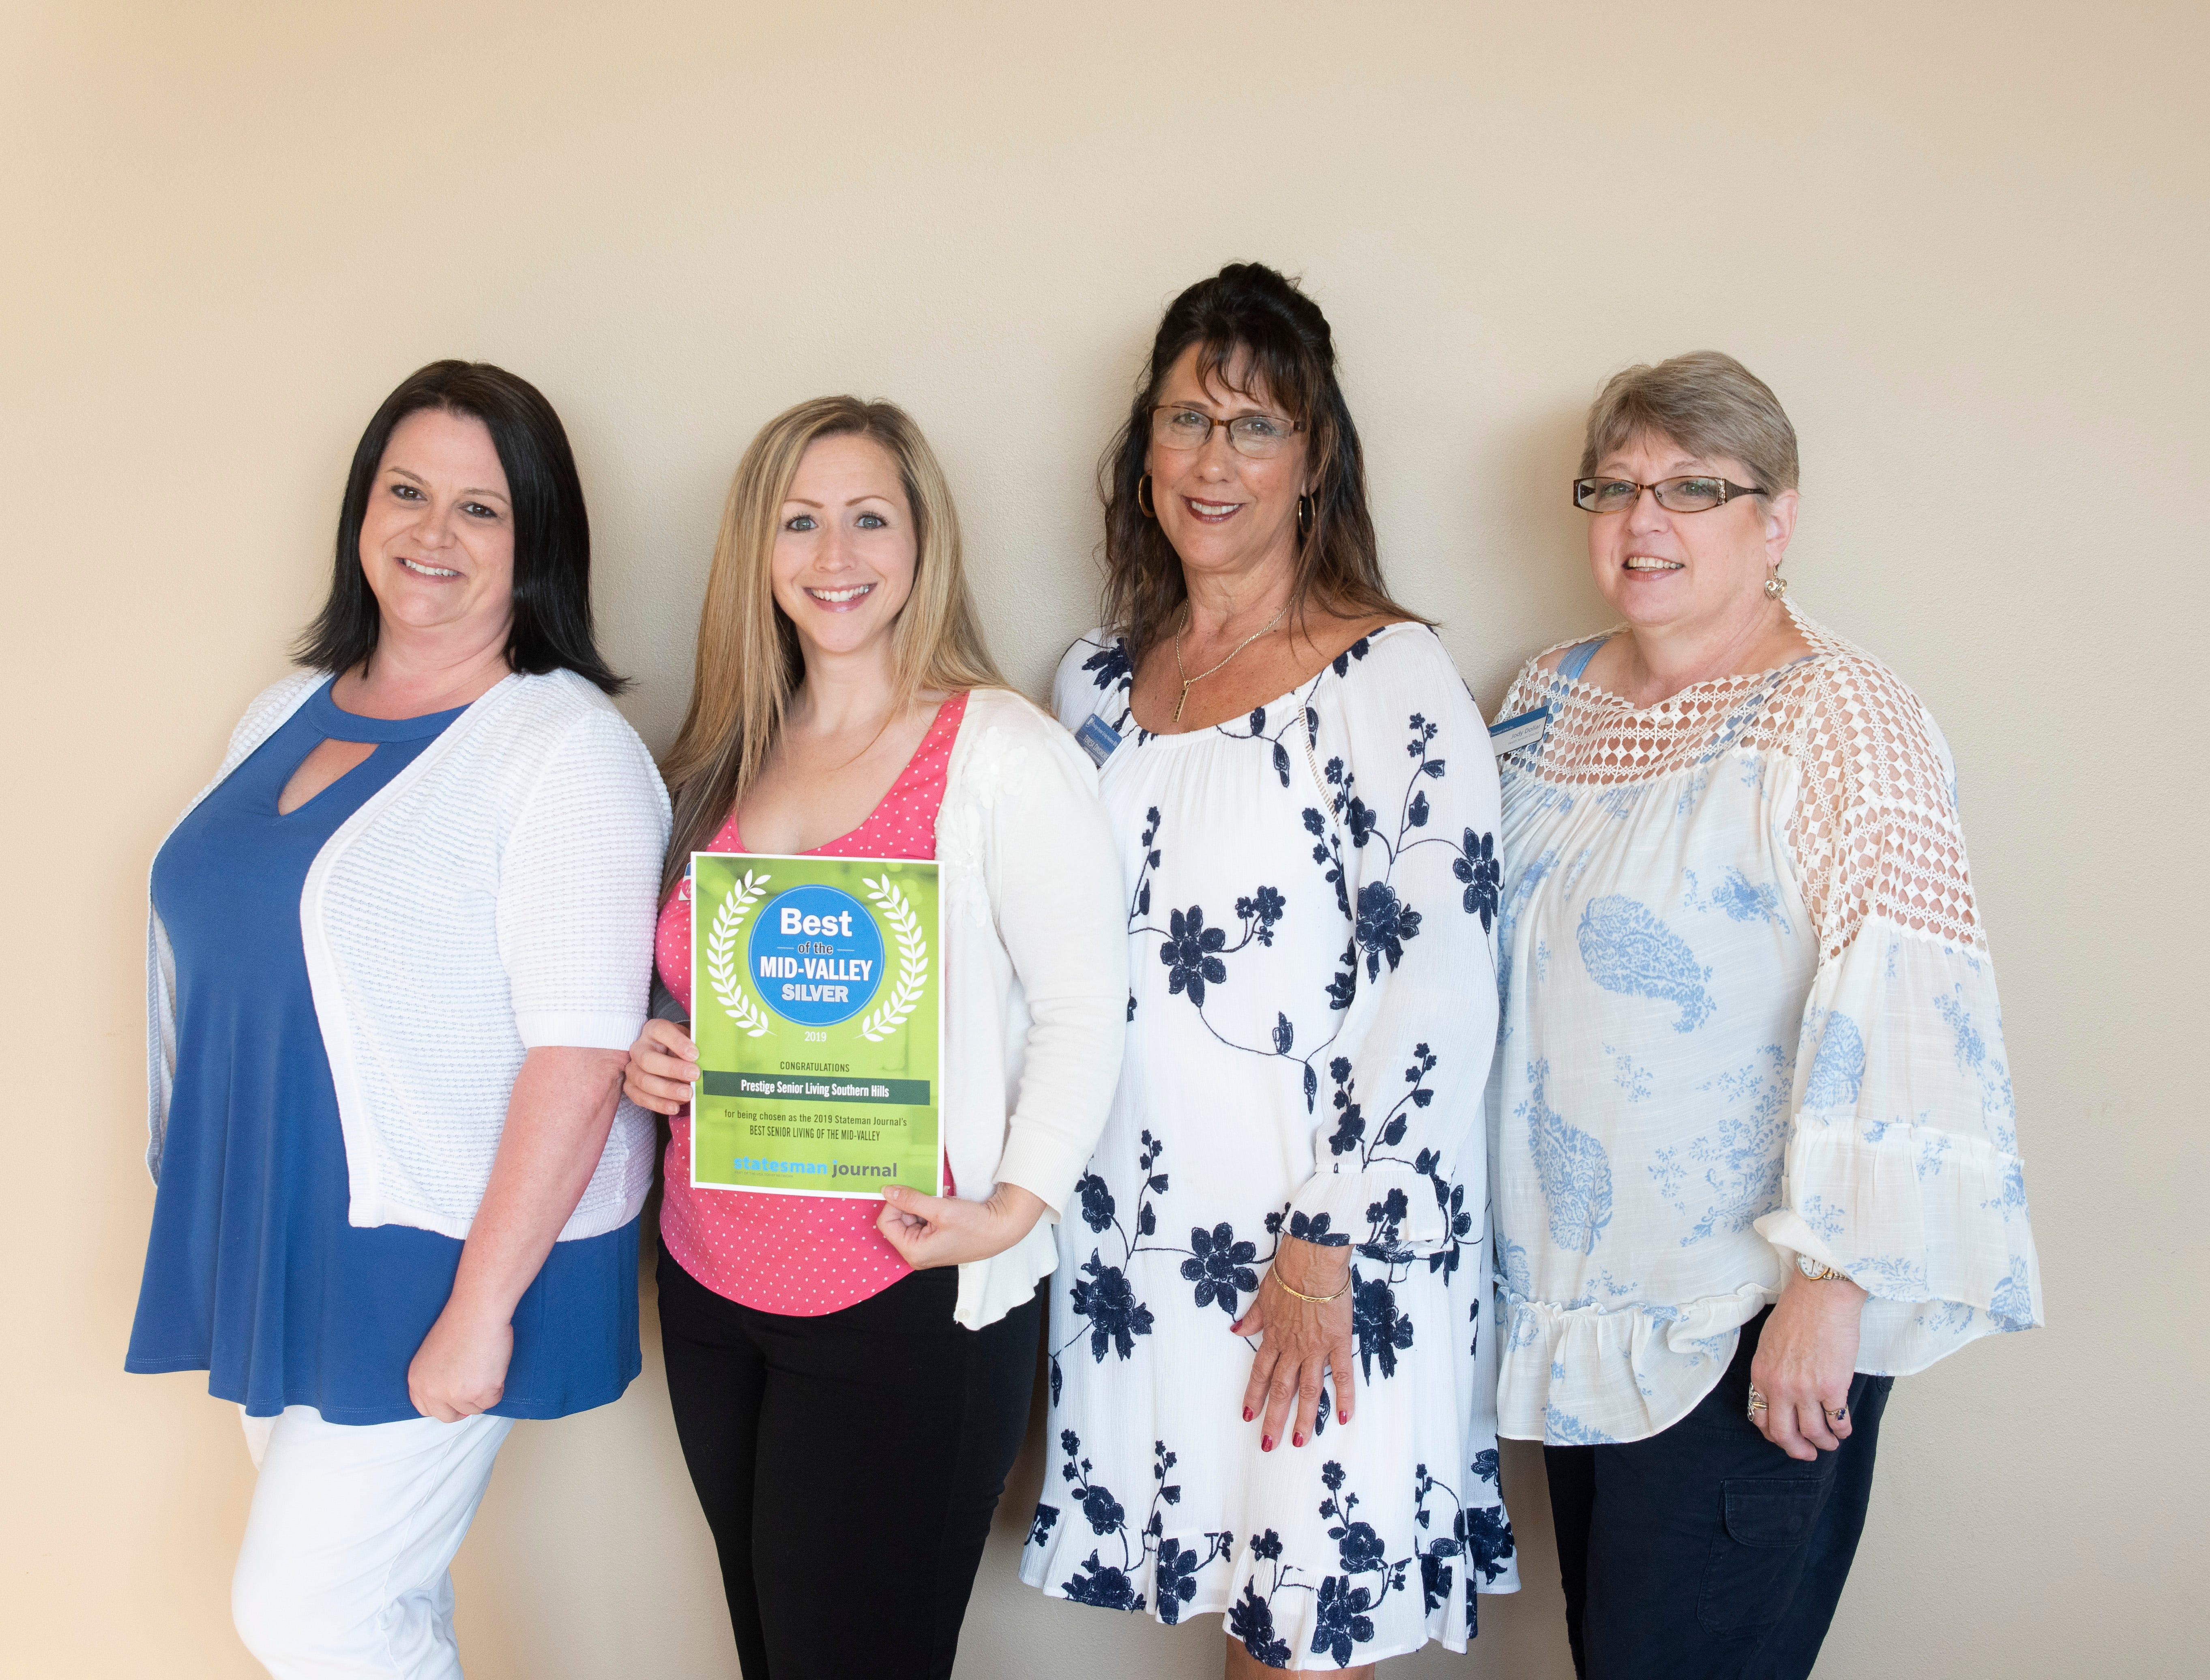 Prestige Senior Living Southern Hills won silver for Best Senior Living in the 2019 Best of the Mid-Valley.